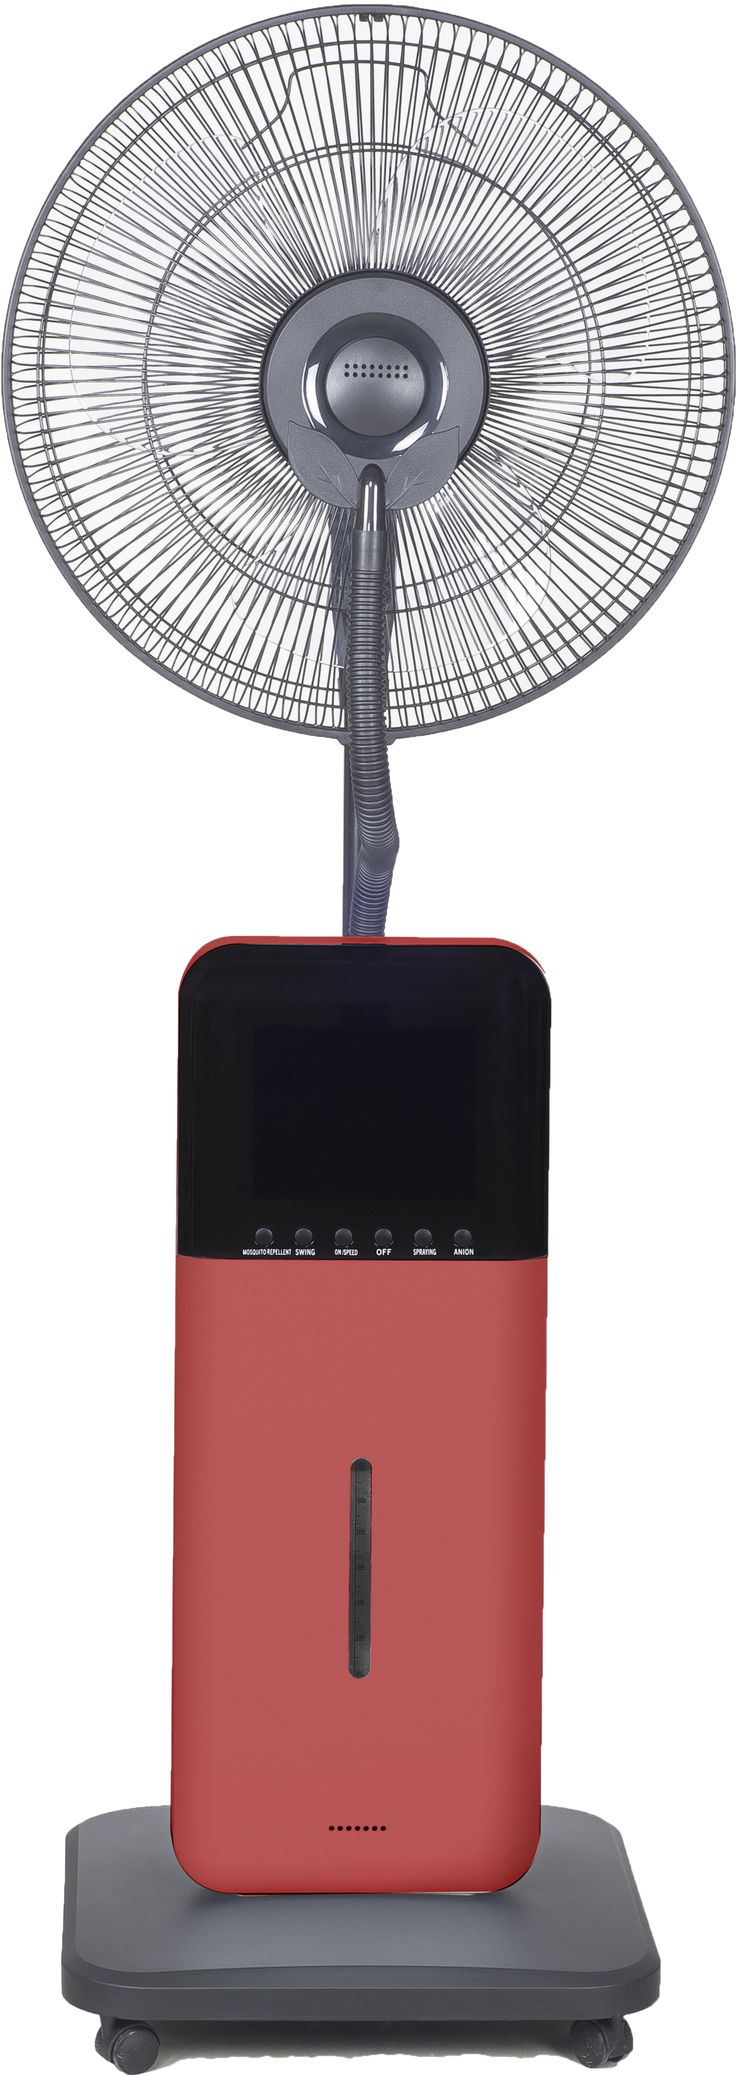 CoolZone Ultrasonic Dry Misting Fan with Bluetooth Technology SUNHEAT CZ500